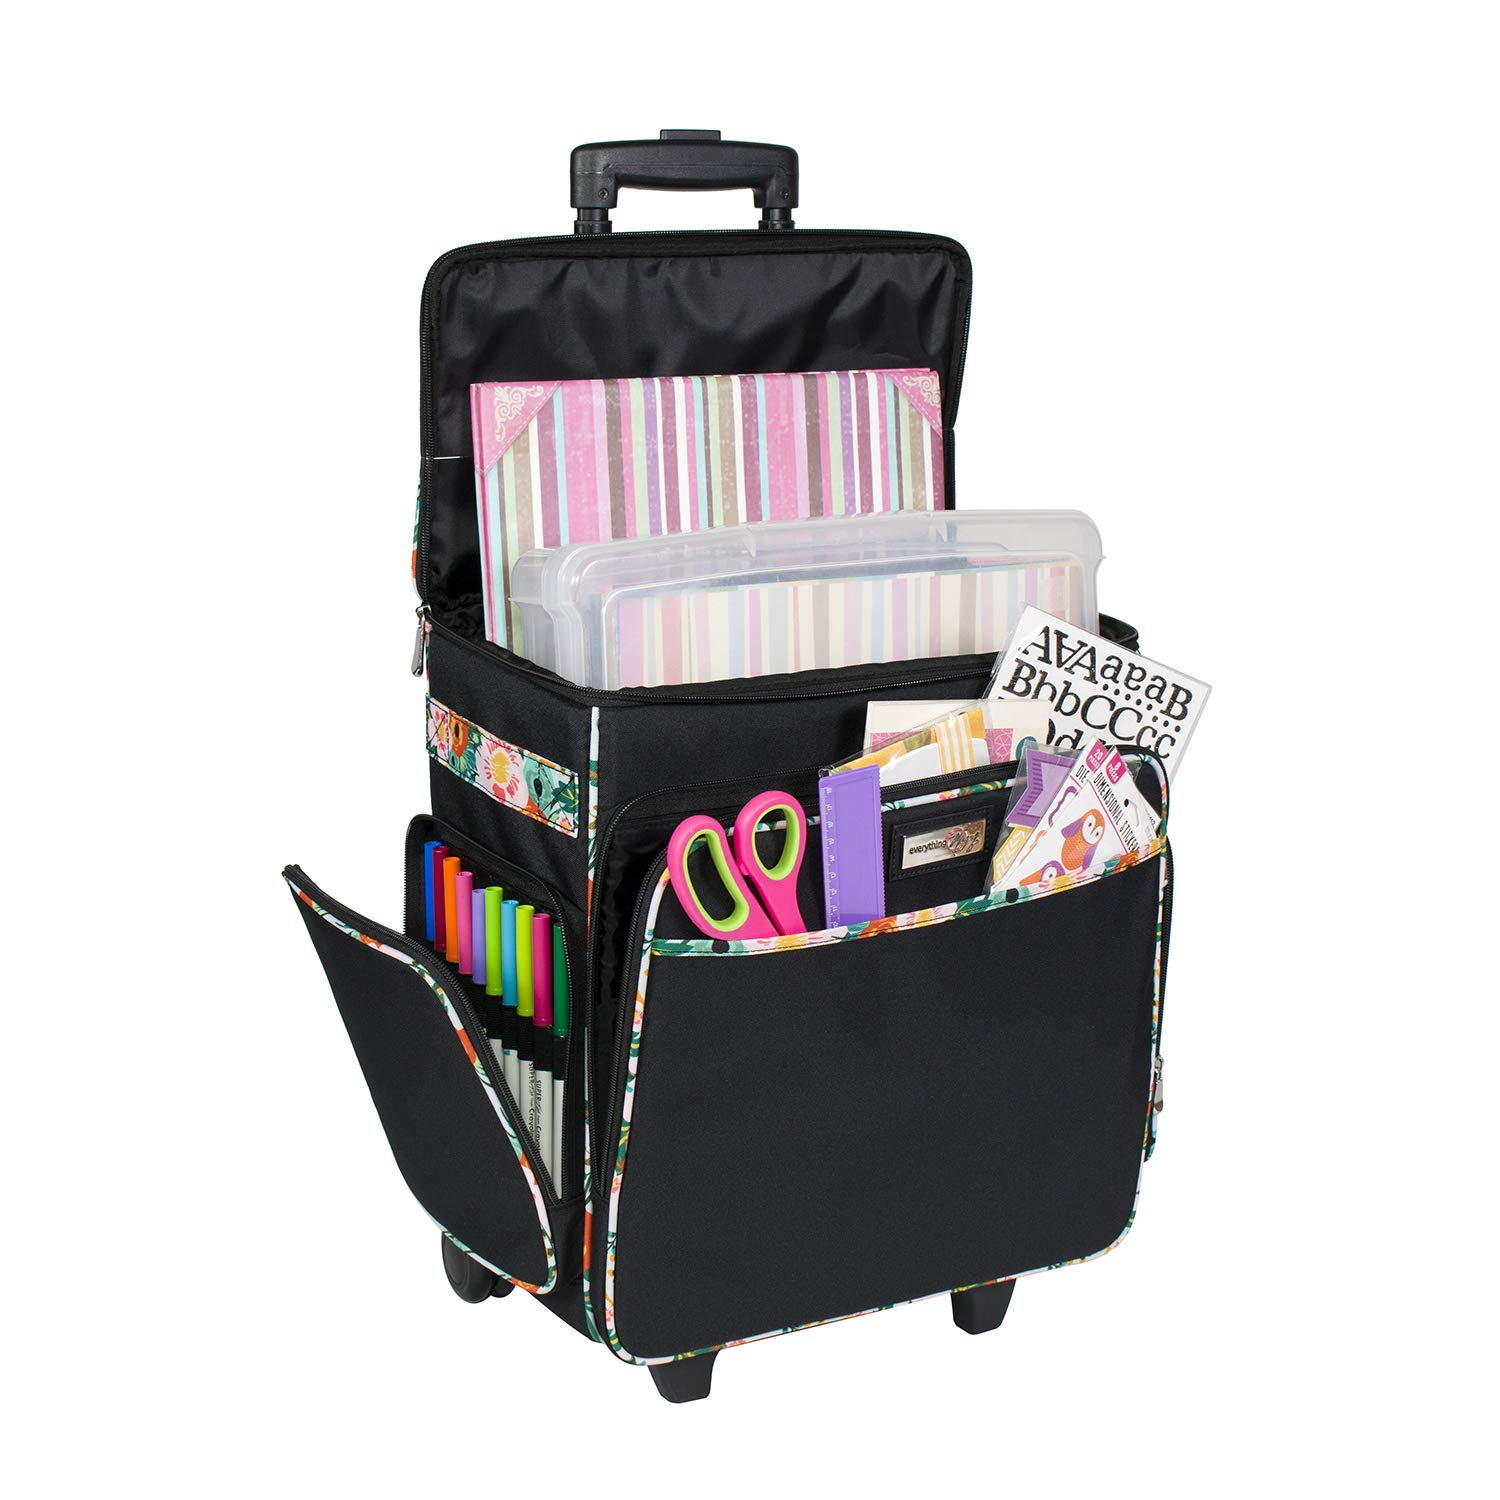 Everything Mary Black & Floral Rolling Scrapbook Storage Tote - Scrapbooking Storage Case for Rings, Paper, Binder, Crafts, Beads, Paper, Scissors - Telescoping Handle with Dual Wheels - Craft Case